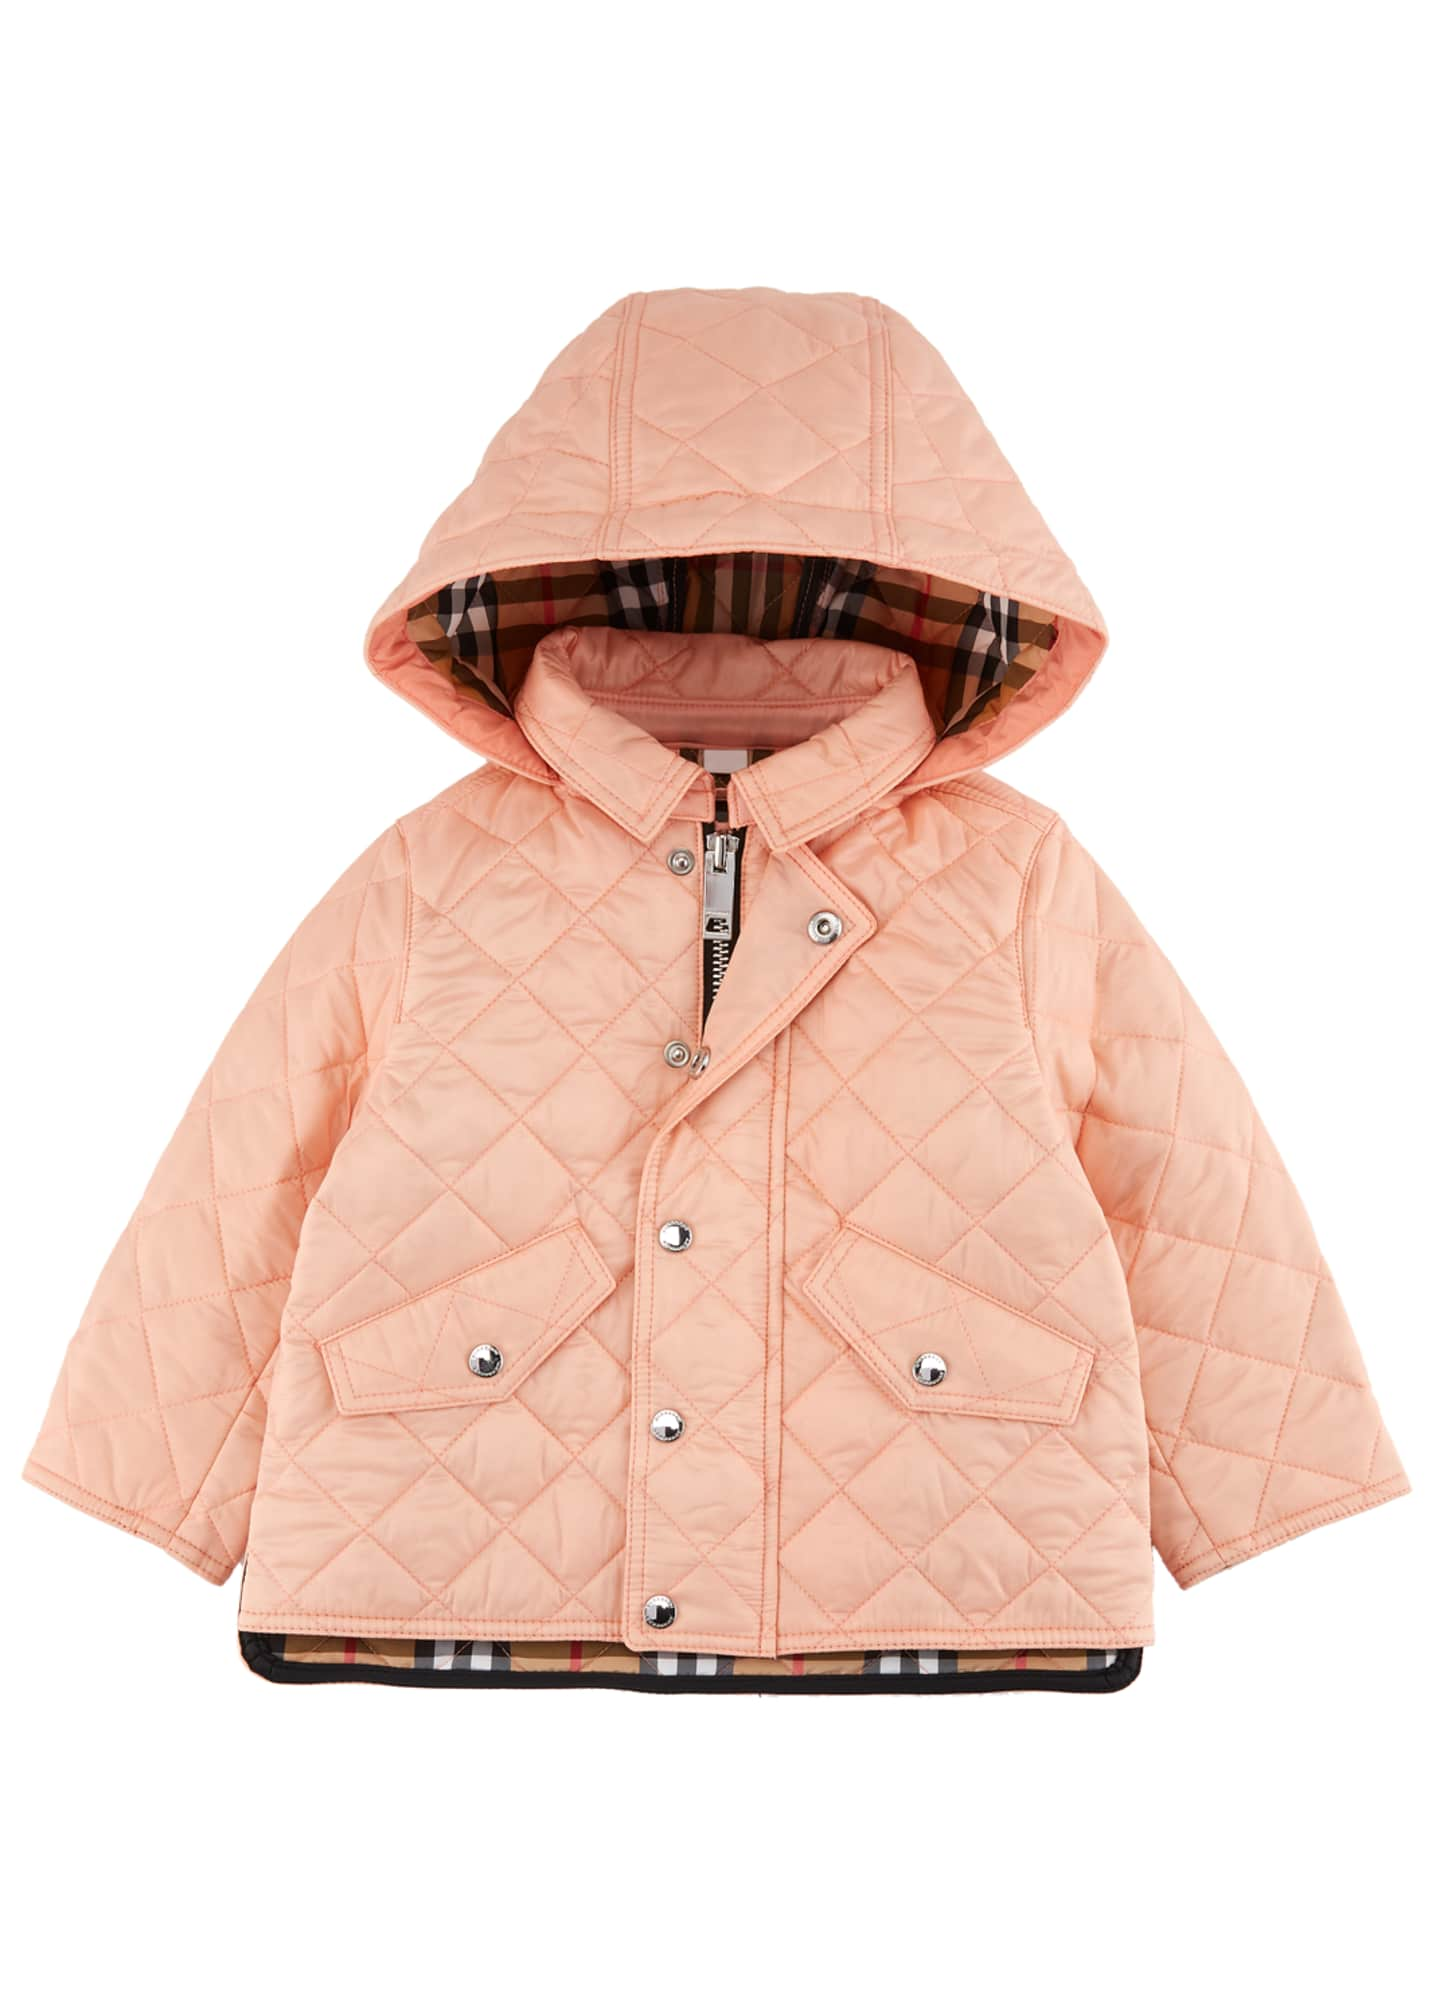 Burberry Ilana Quilted Hooded Coat, Size 12M-3